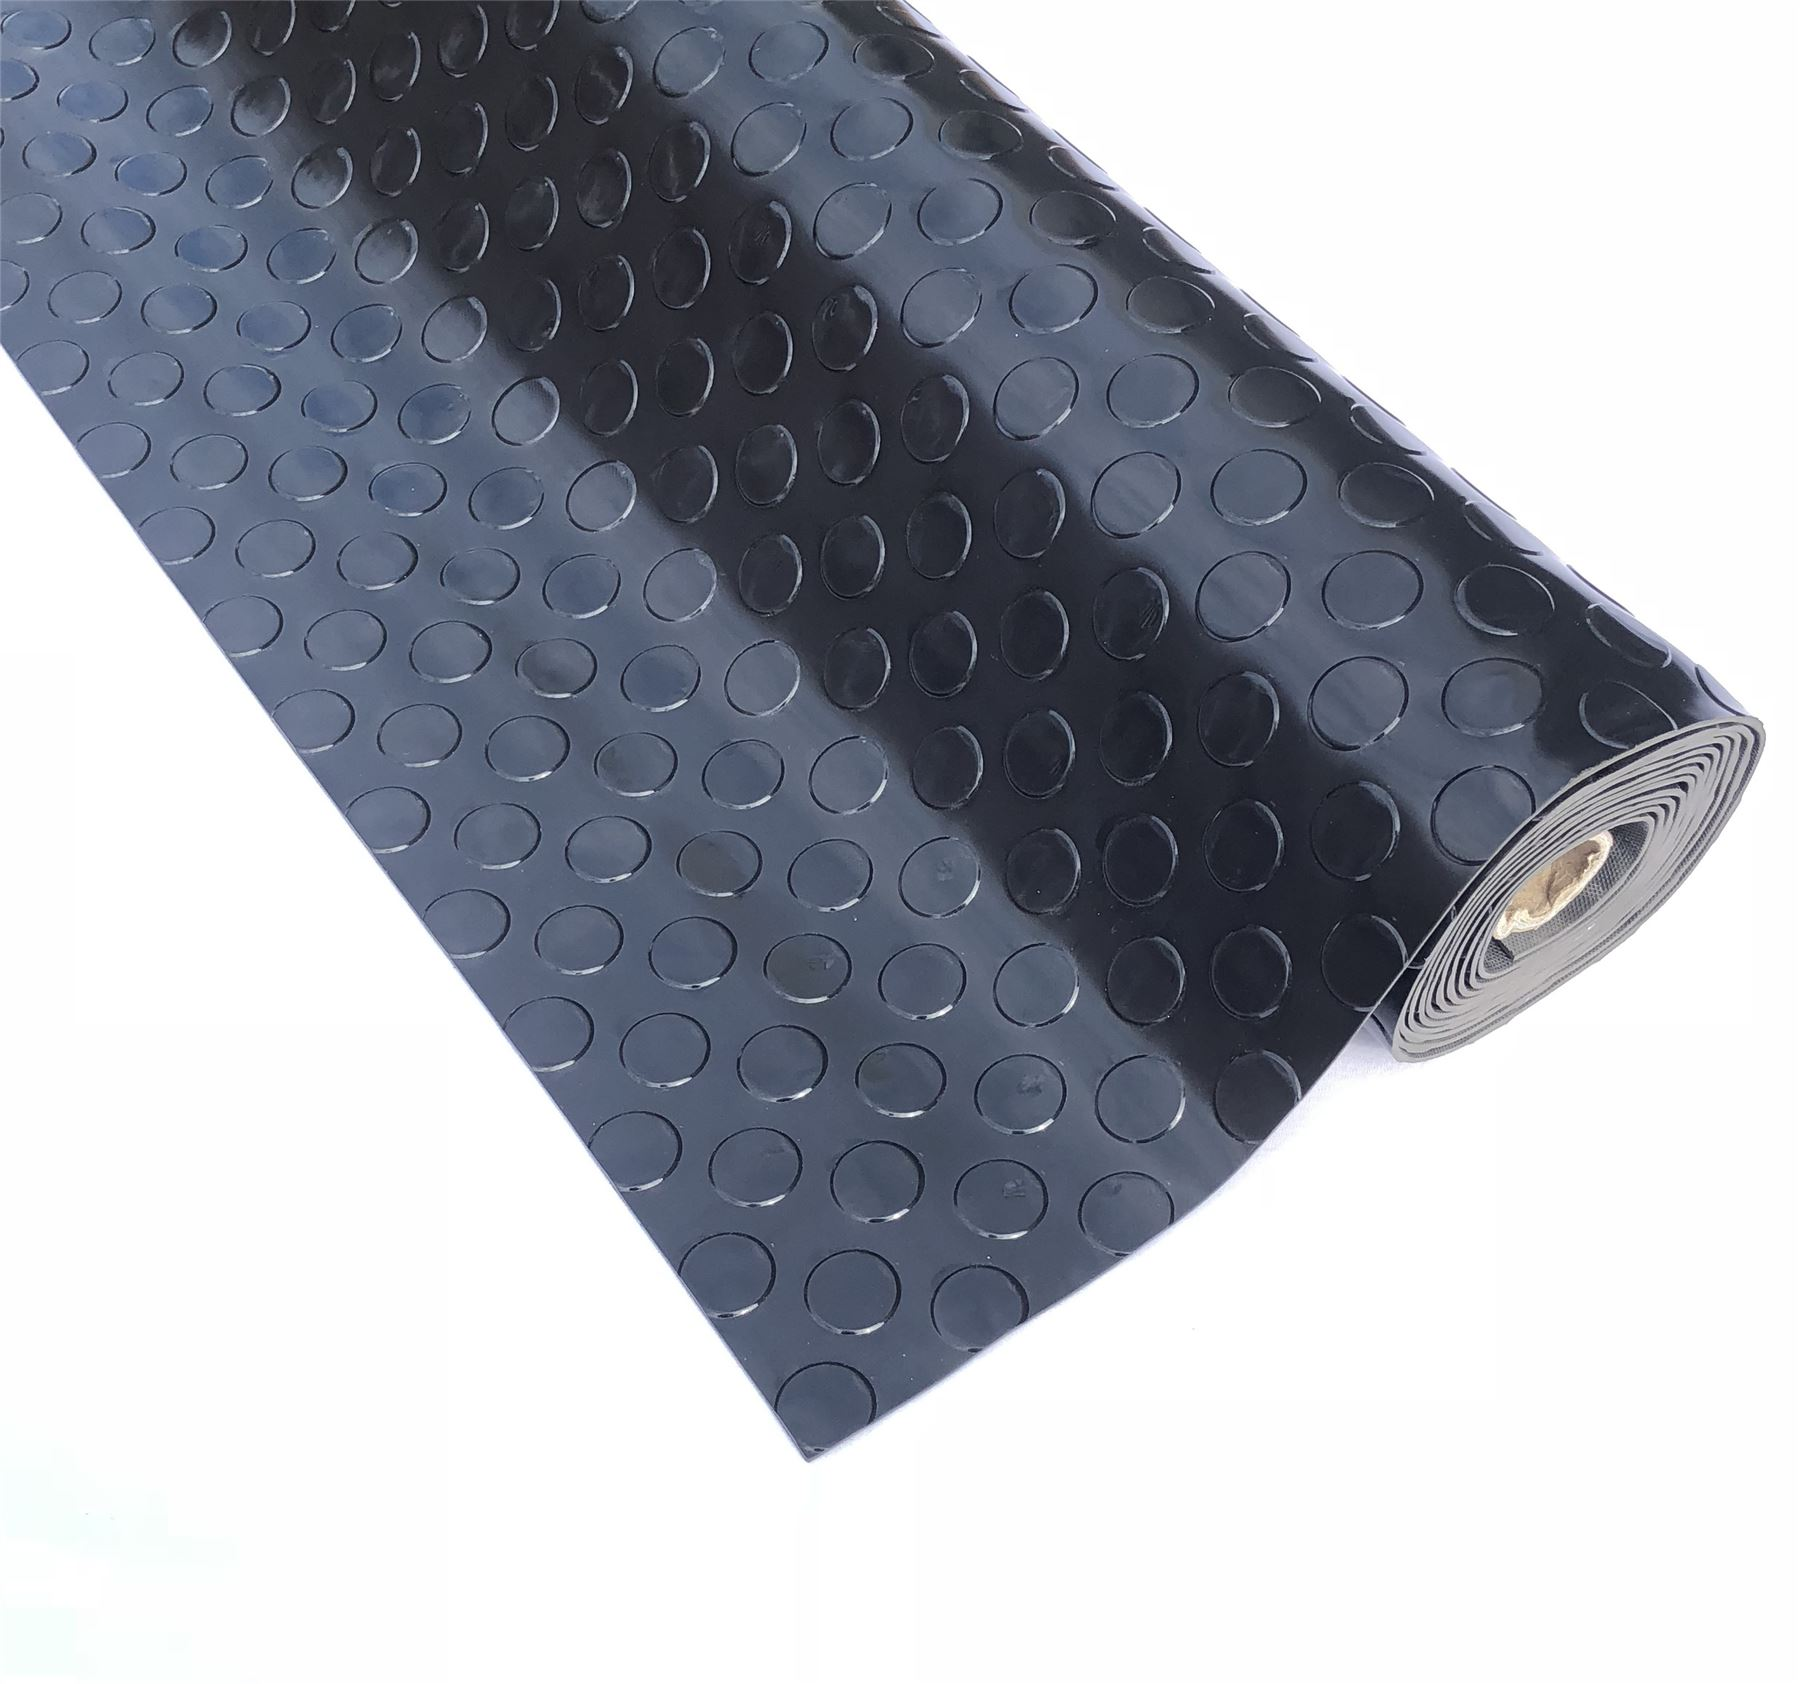 Pvc Flooring Garage Sheeting Matting Rolls 1m Wide No